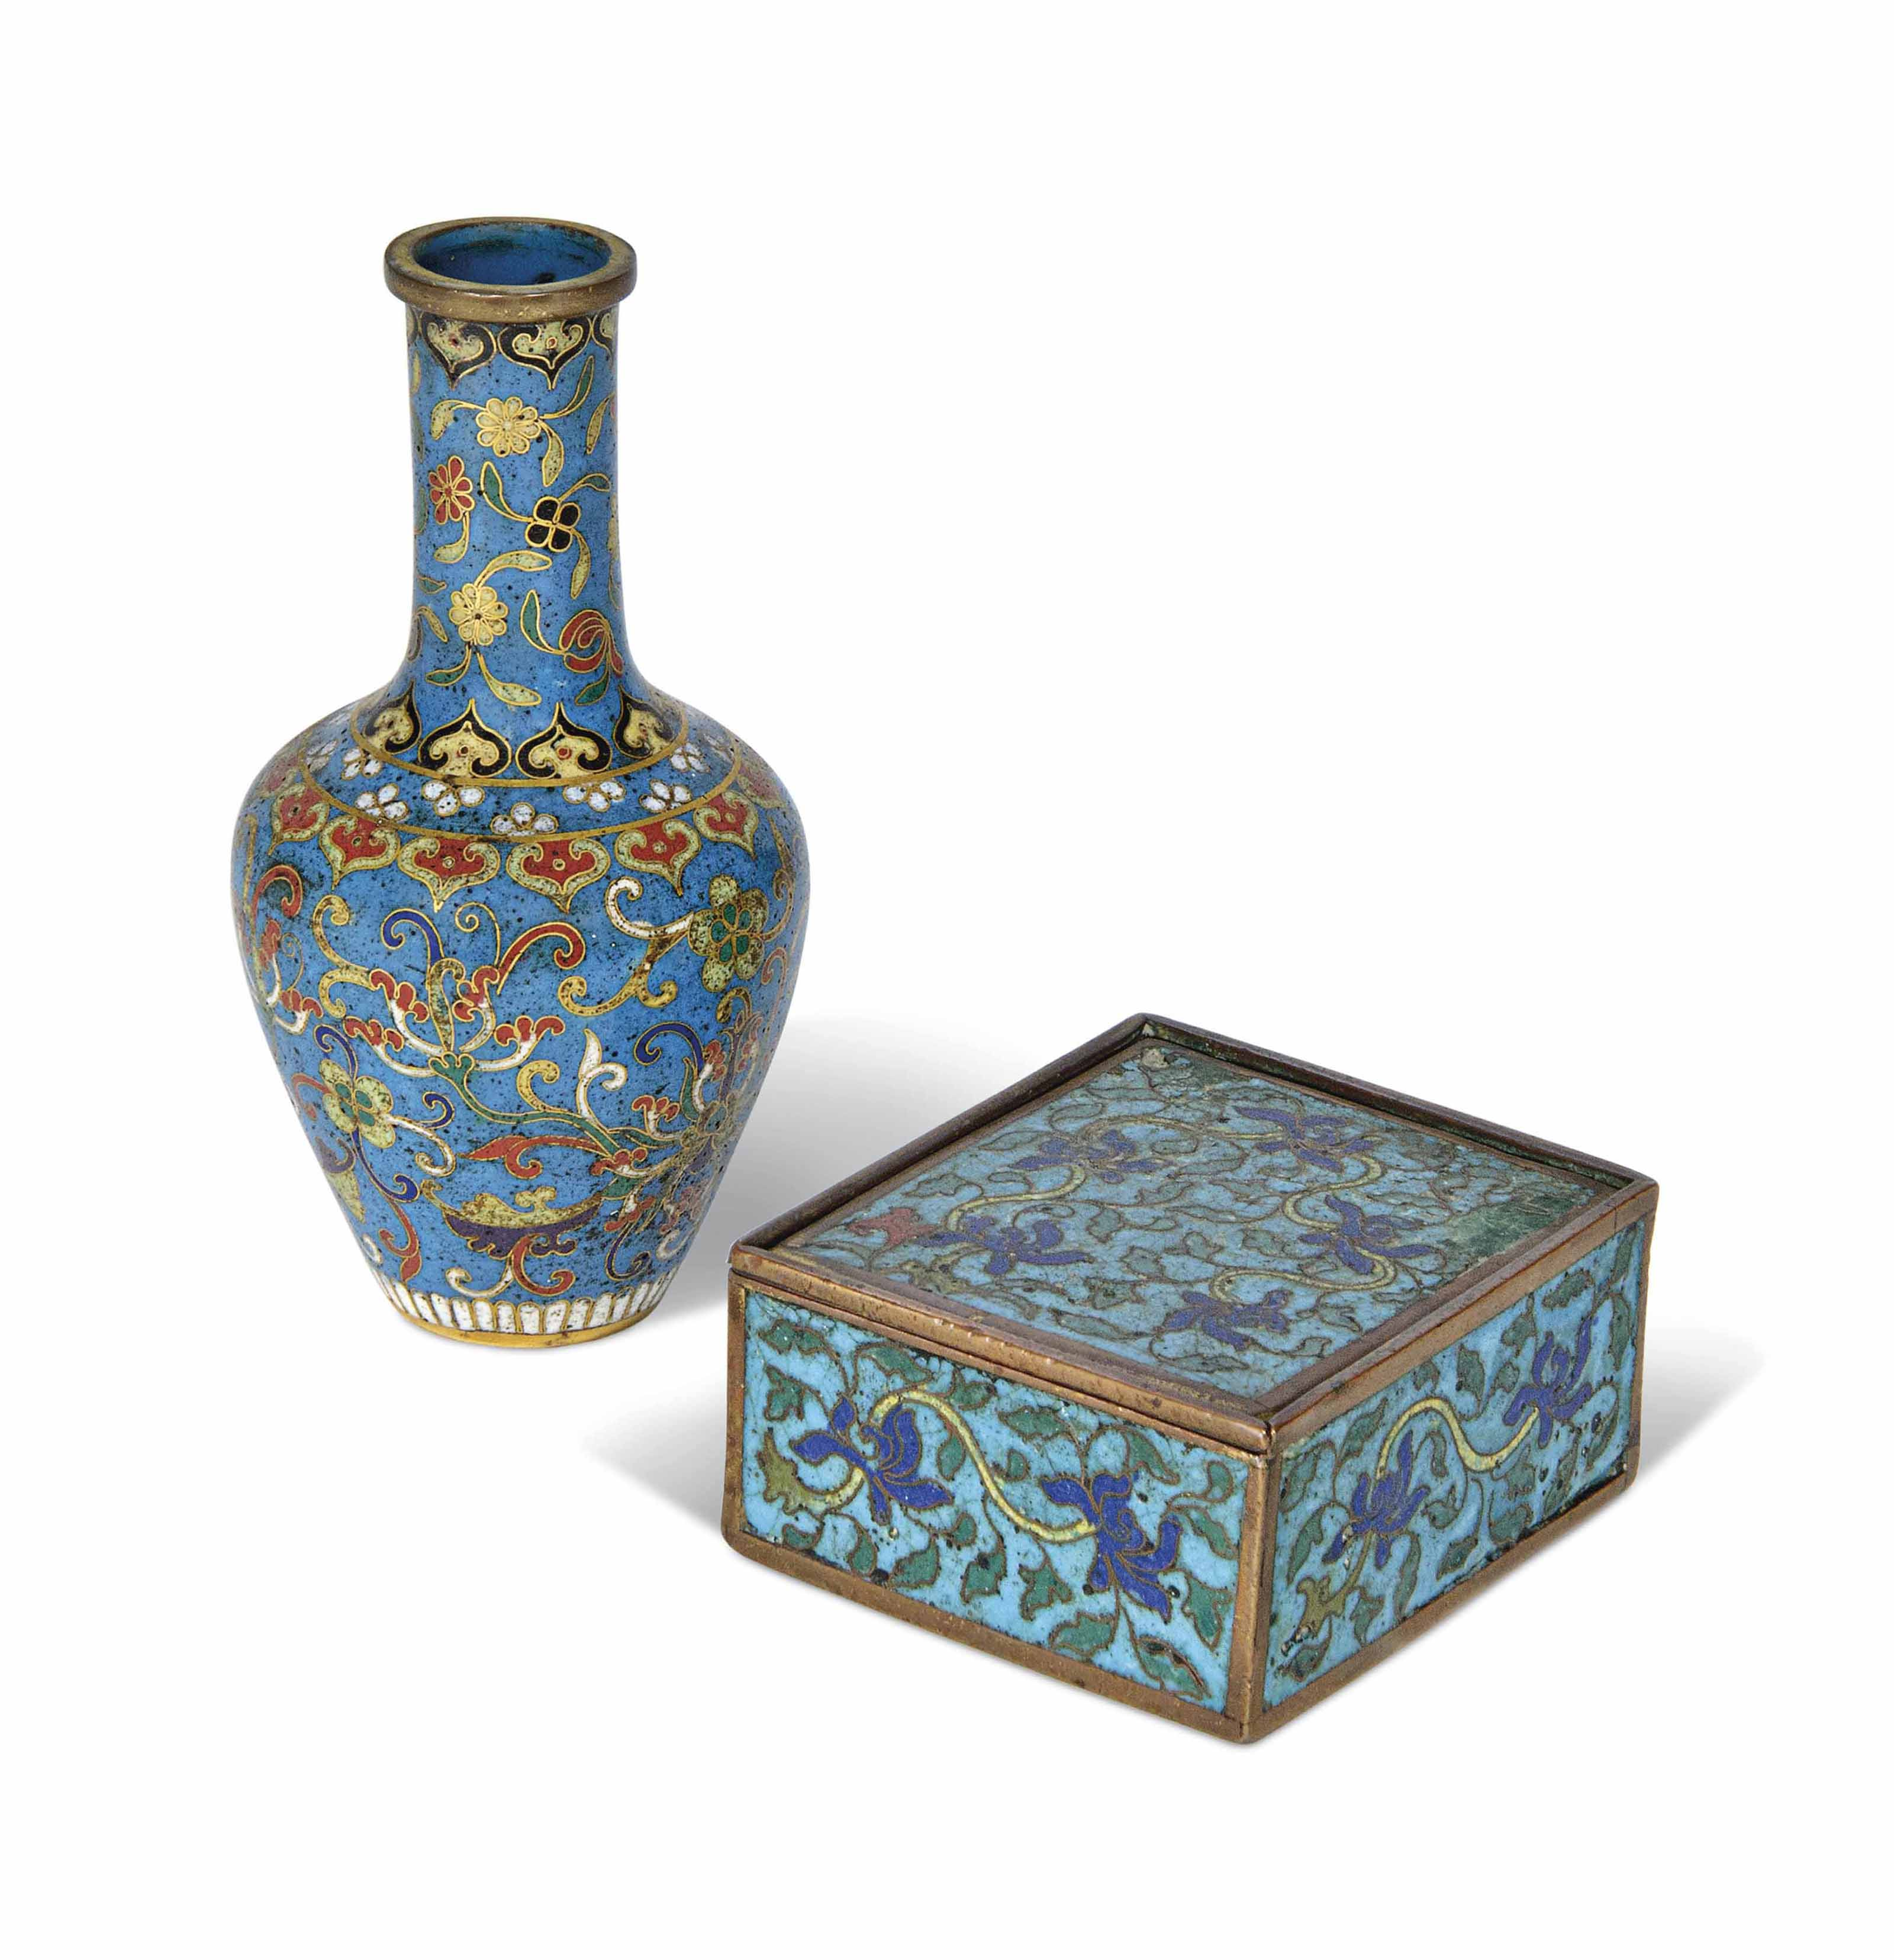 A CHINESE CLOISONNÉ TURQUOISE-